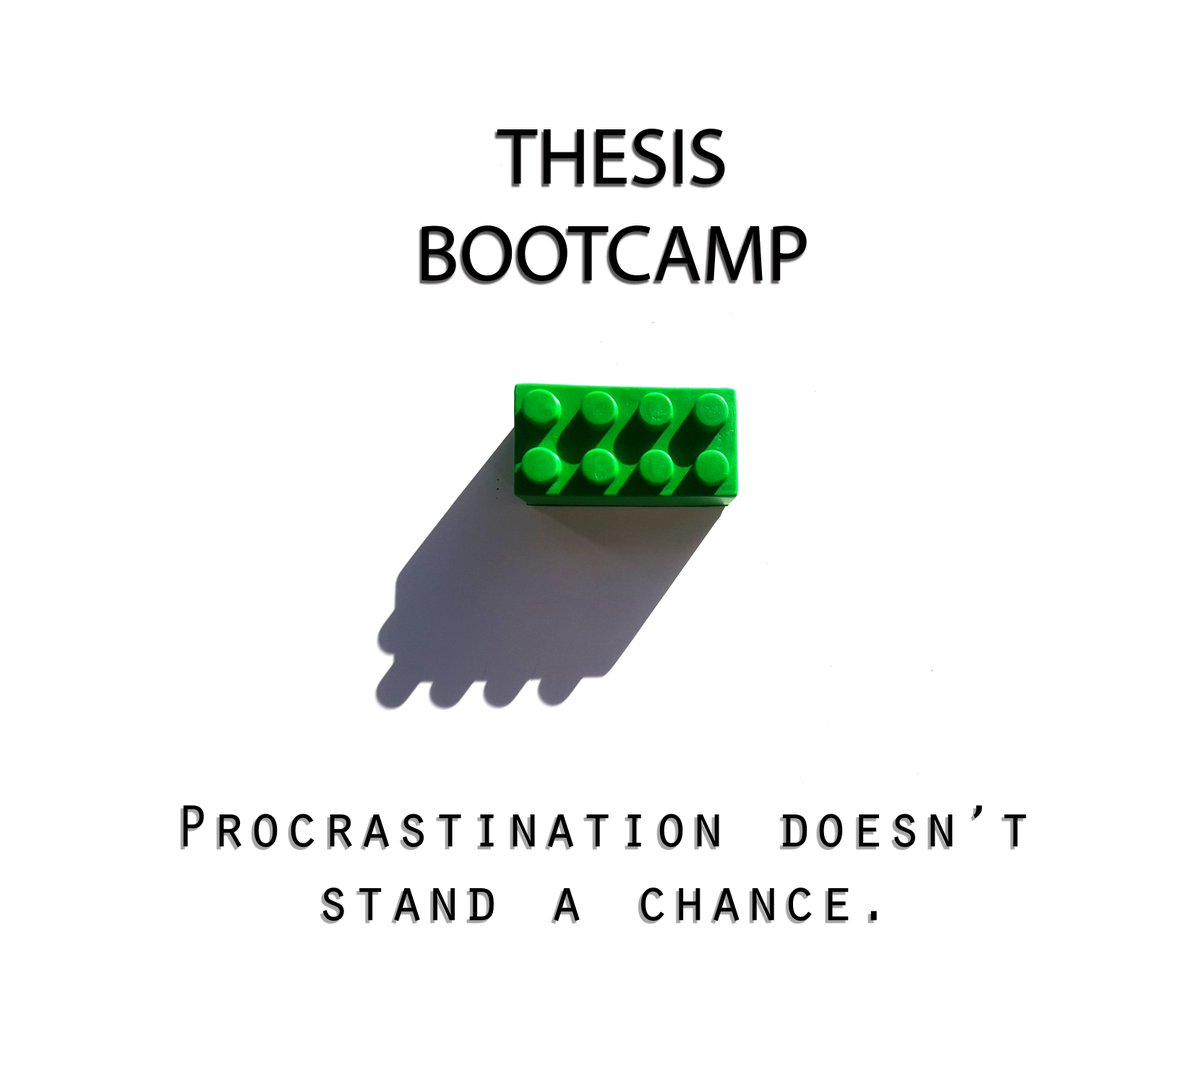 thesis boot camp unimelb